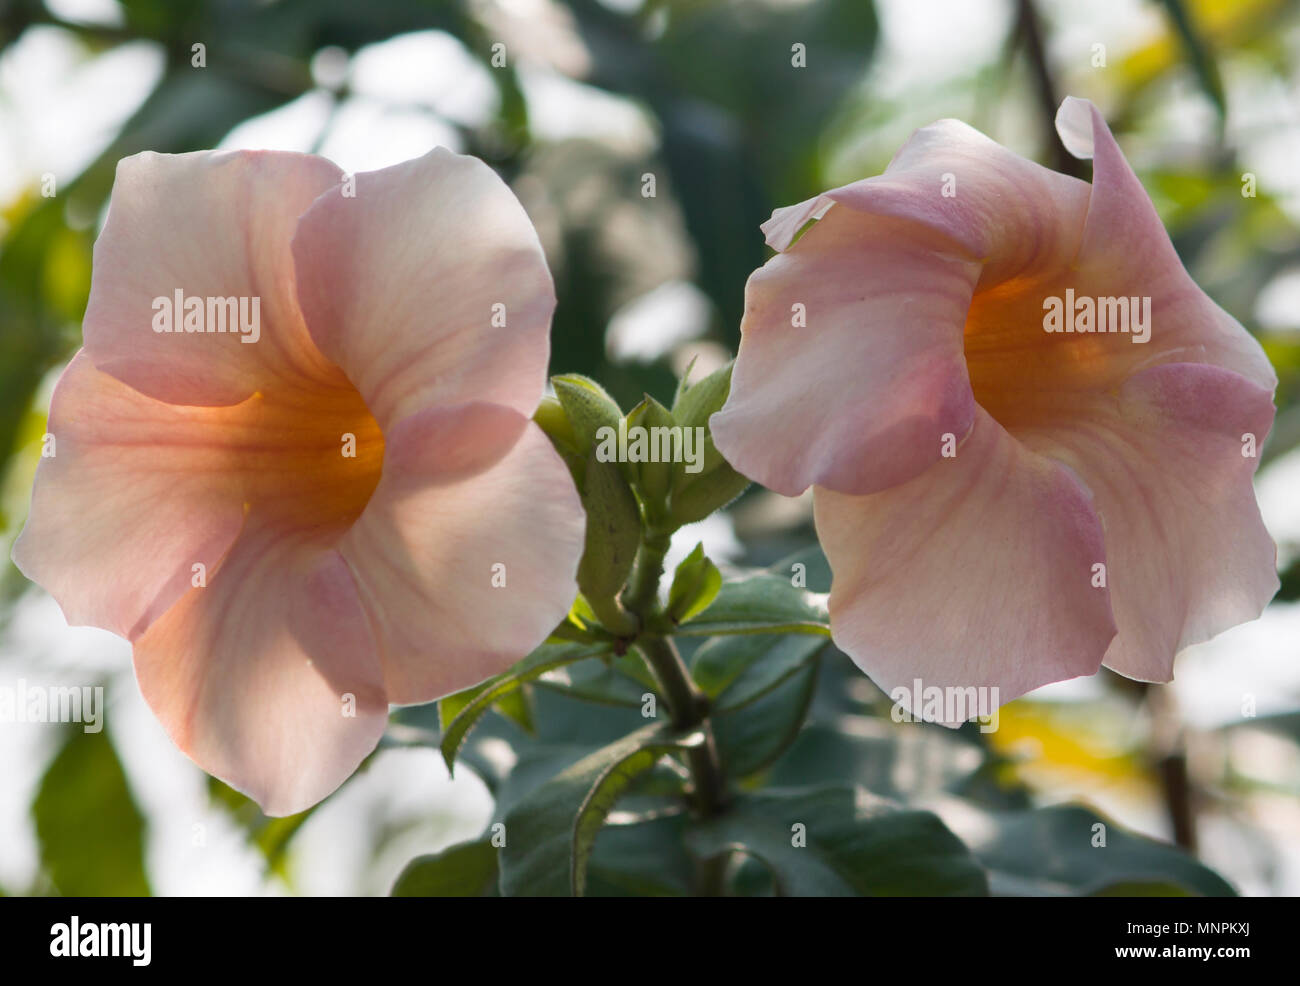 Allamanda Is Perennial Flowering Plant And Commonly Known As Golden